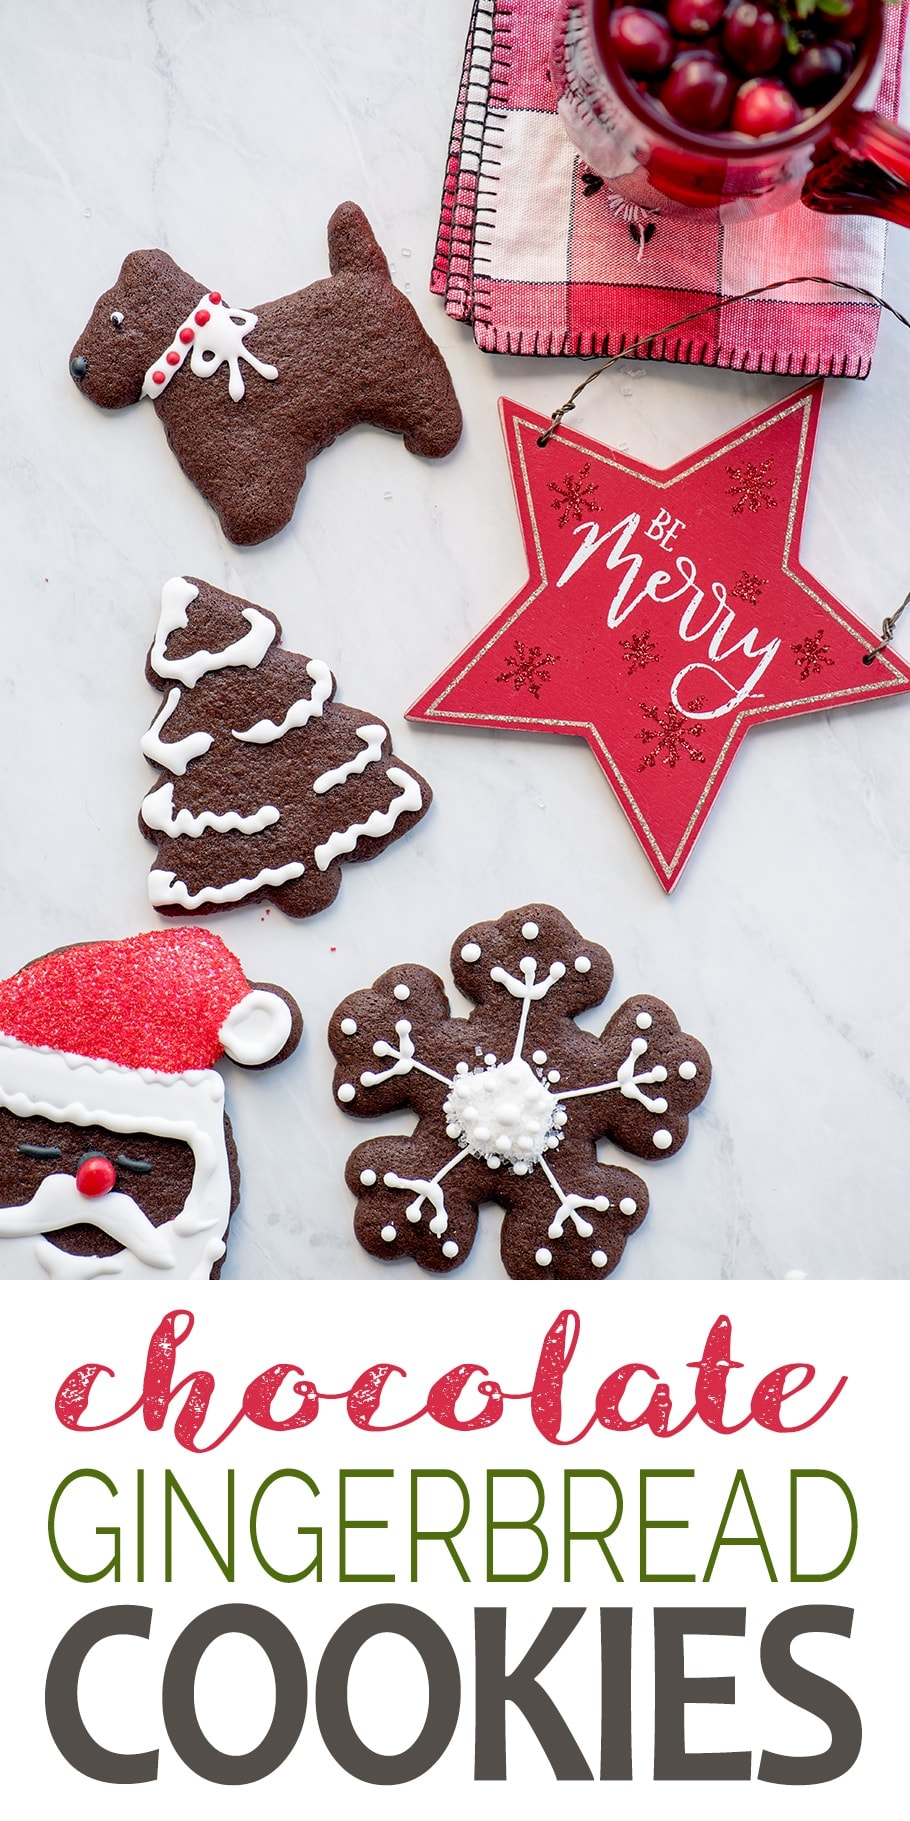 Chocolate Gingerbread Cookies Pin 1 - Cut Out Chocolate Gingerbread Cookies